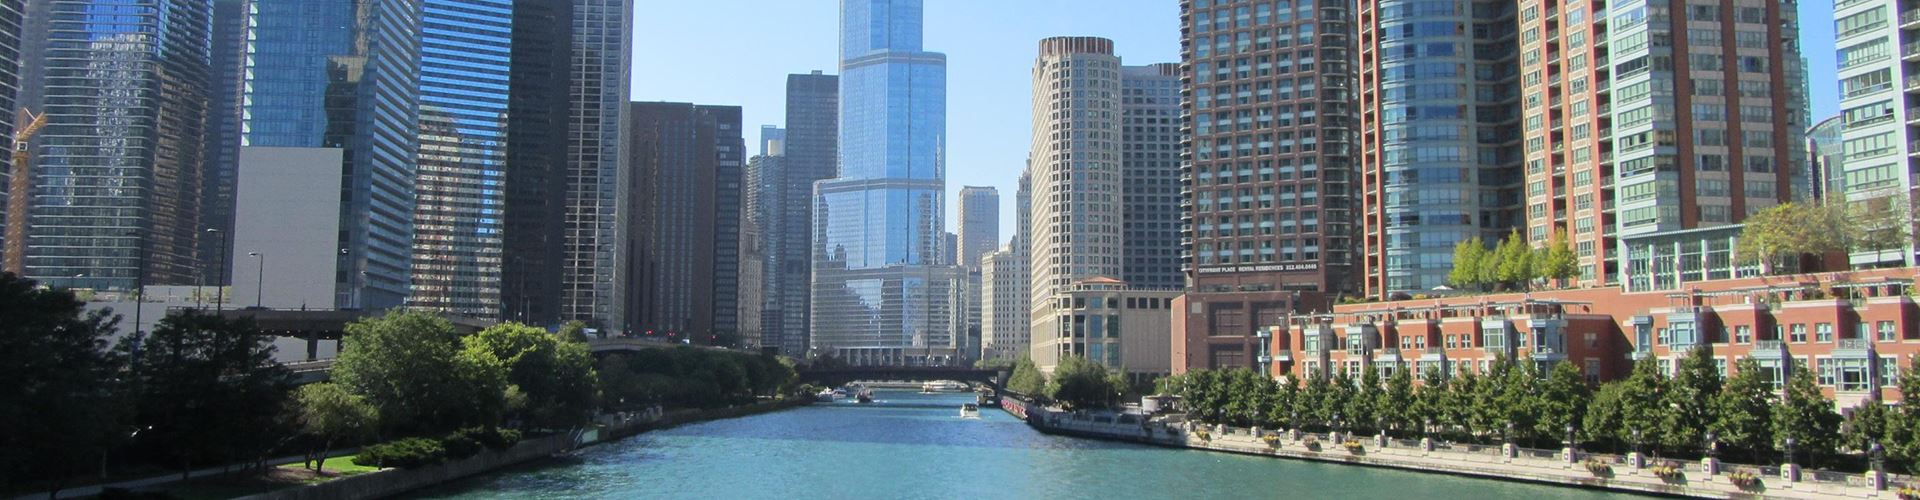 The city of Chicago and the Chicago River